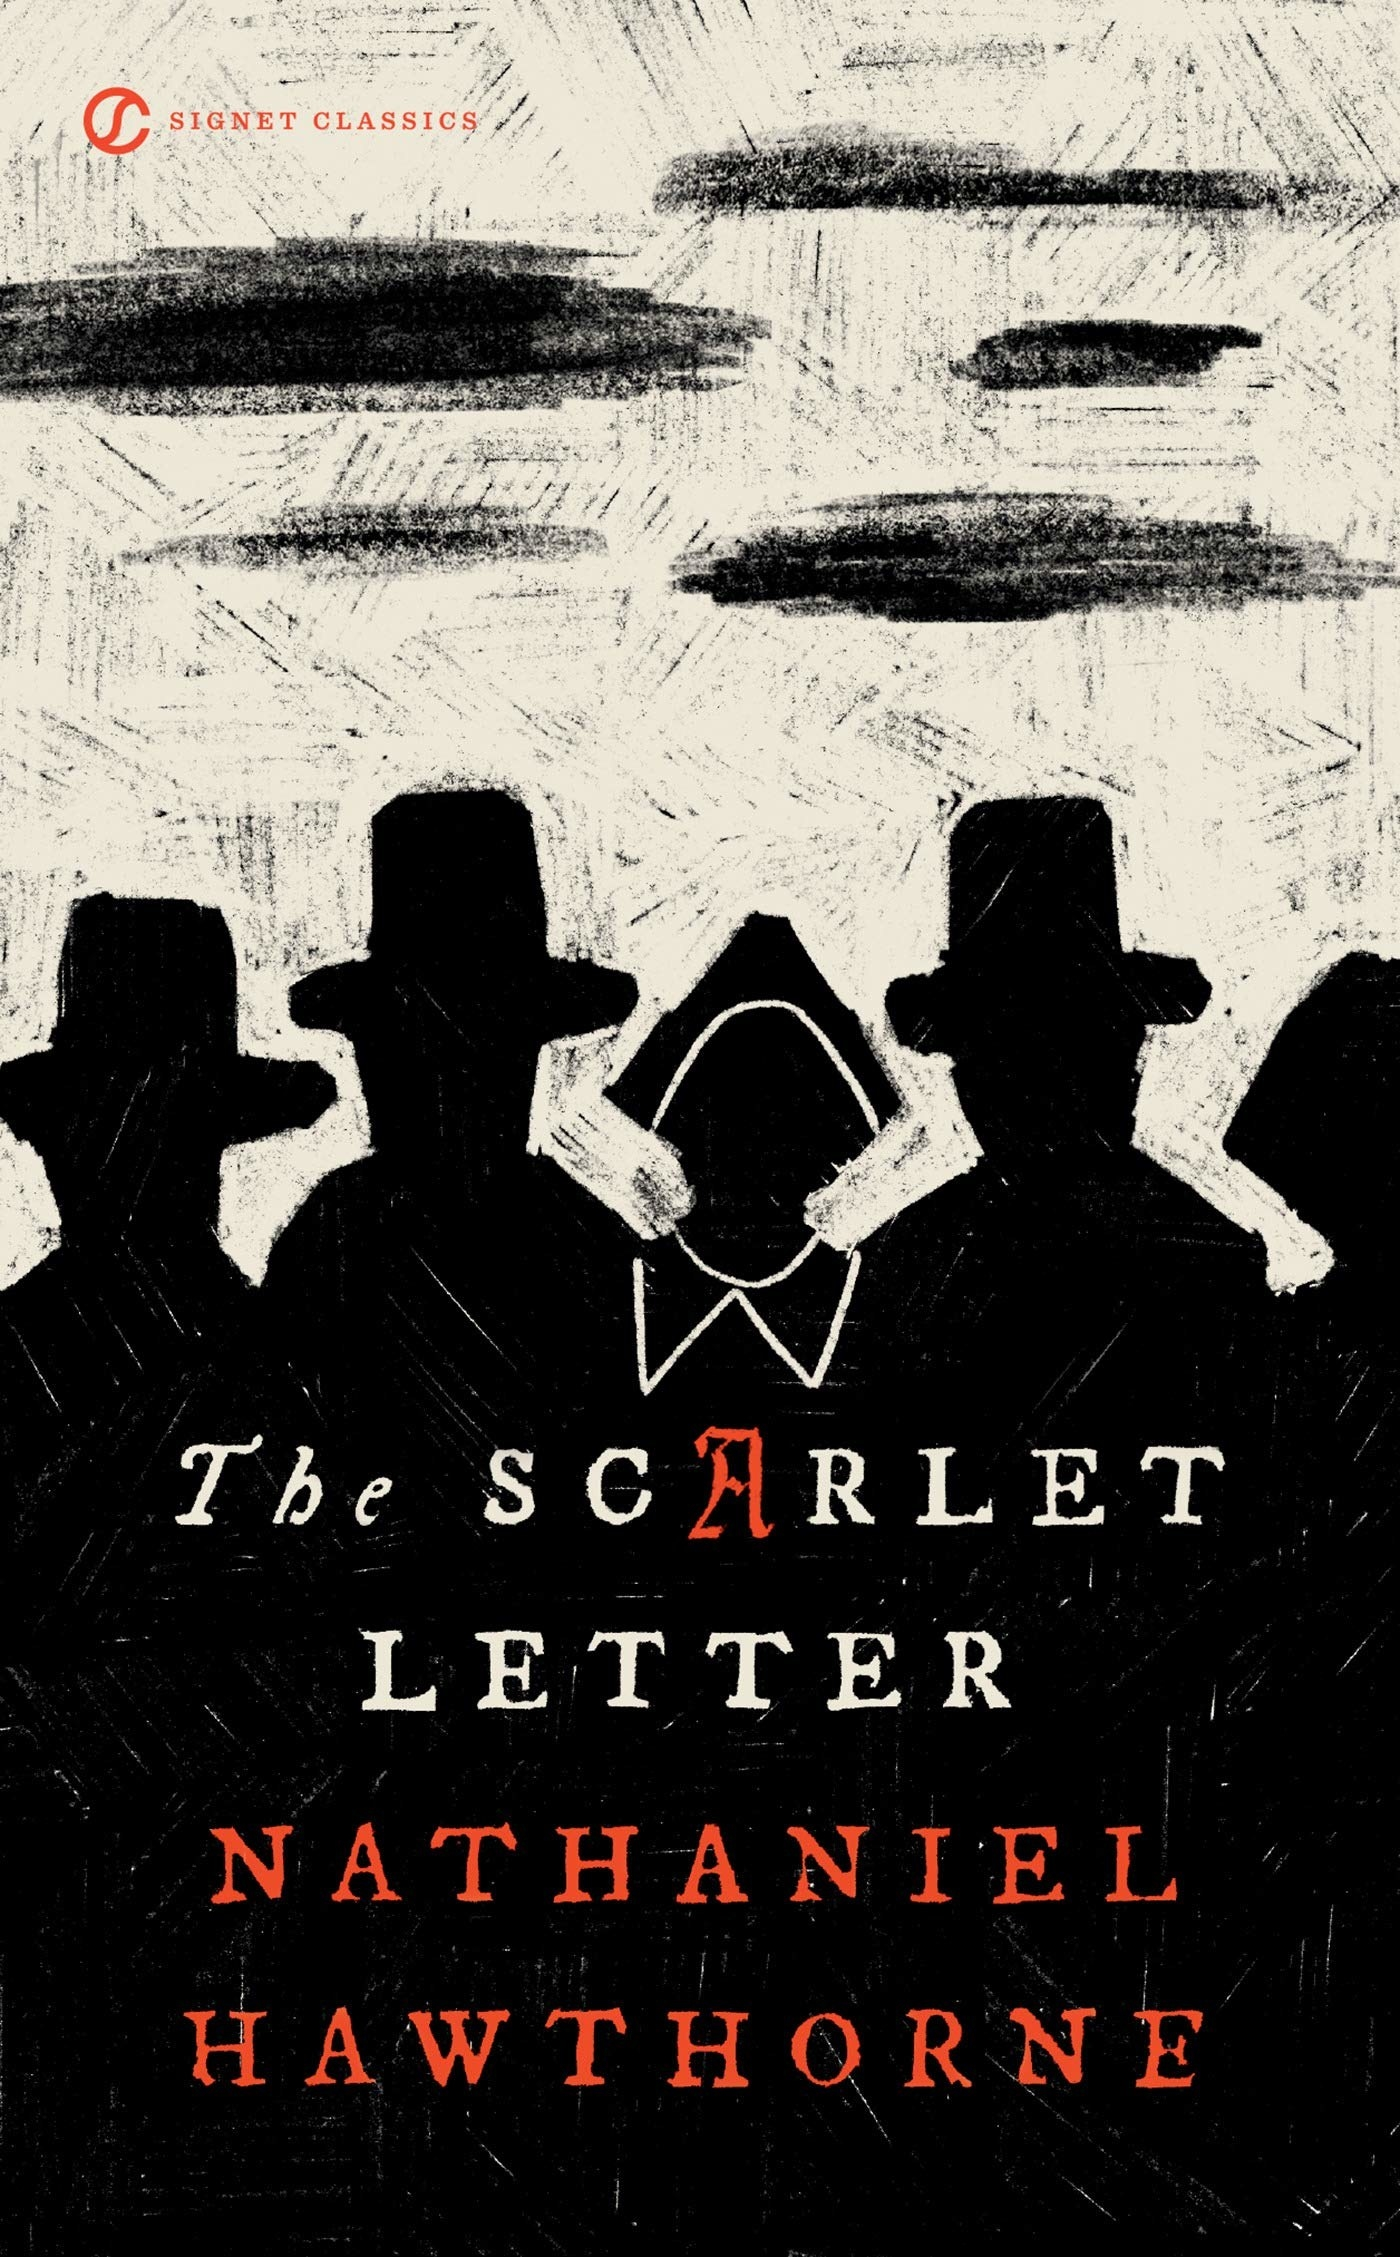 Silhouettes of people on the cover of The Scarlet Letter